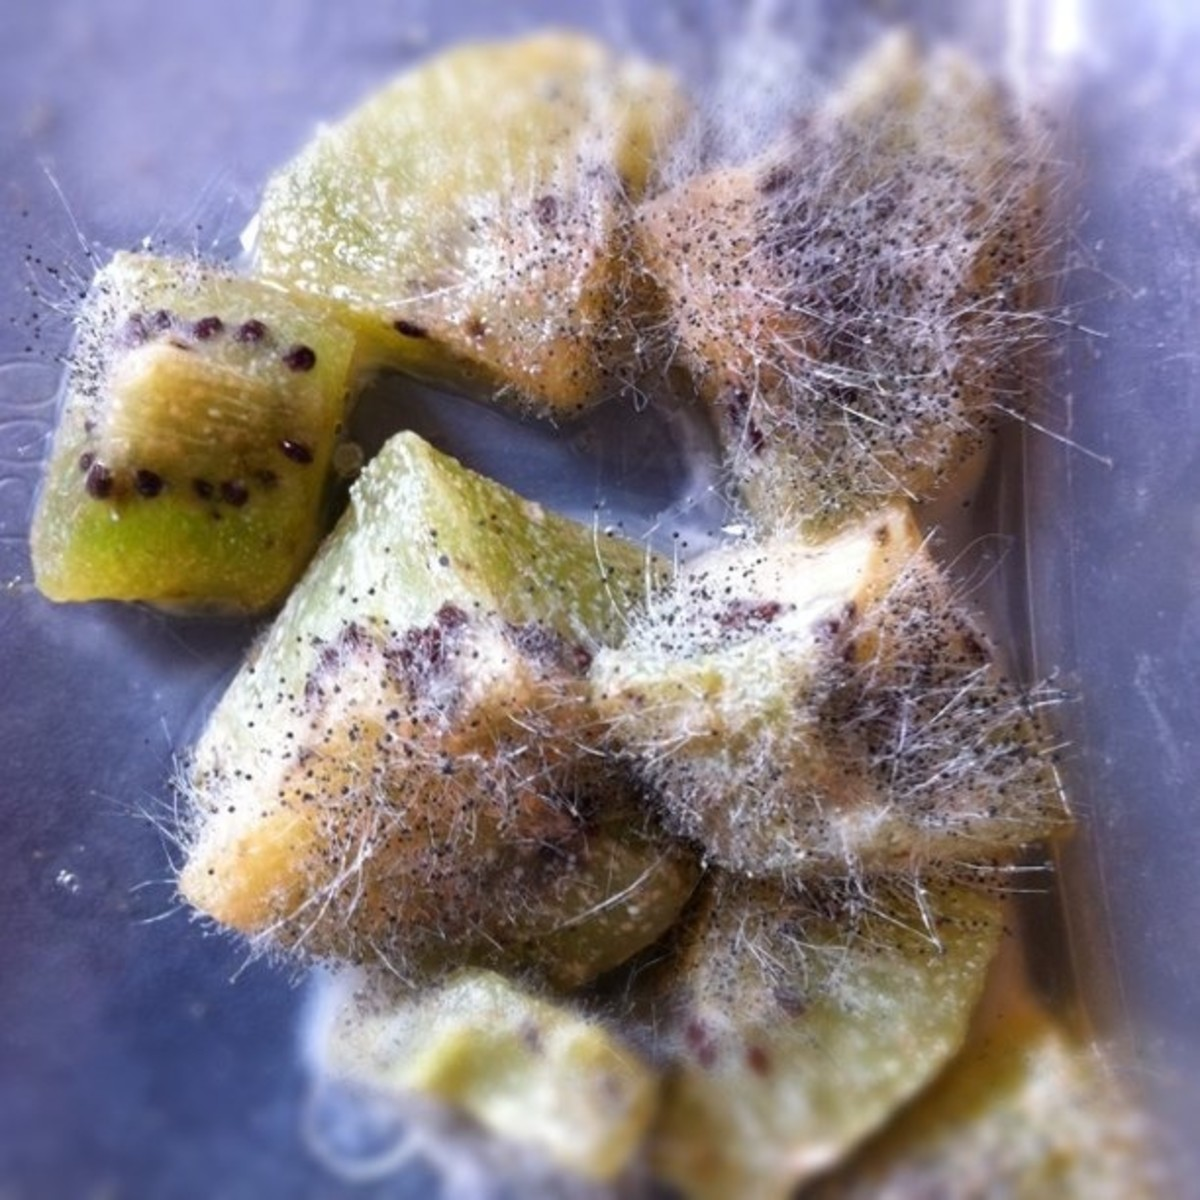 Example of mold on Kiwi fruit.